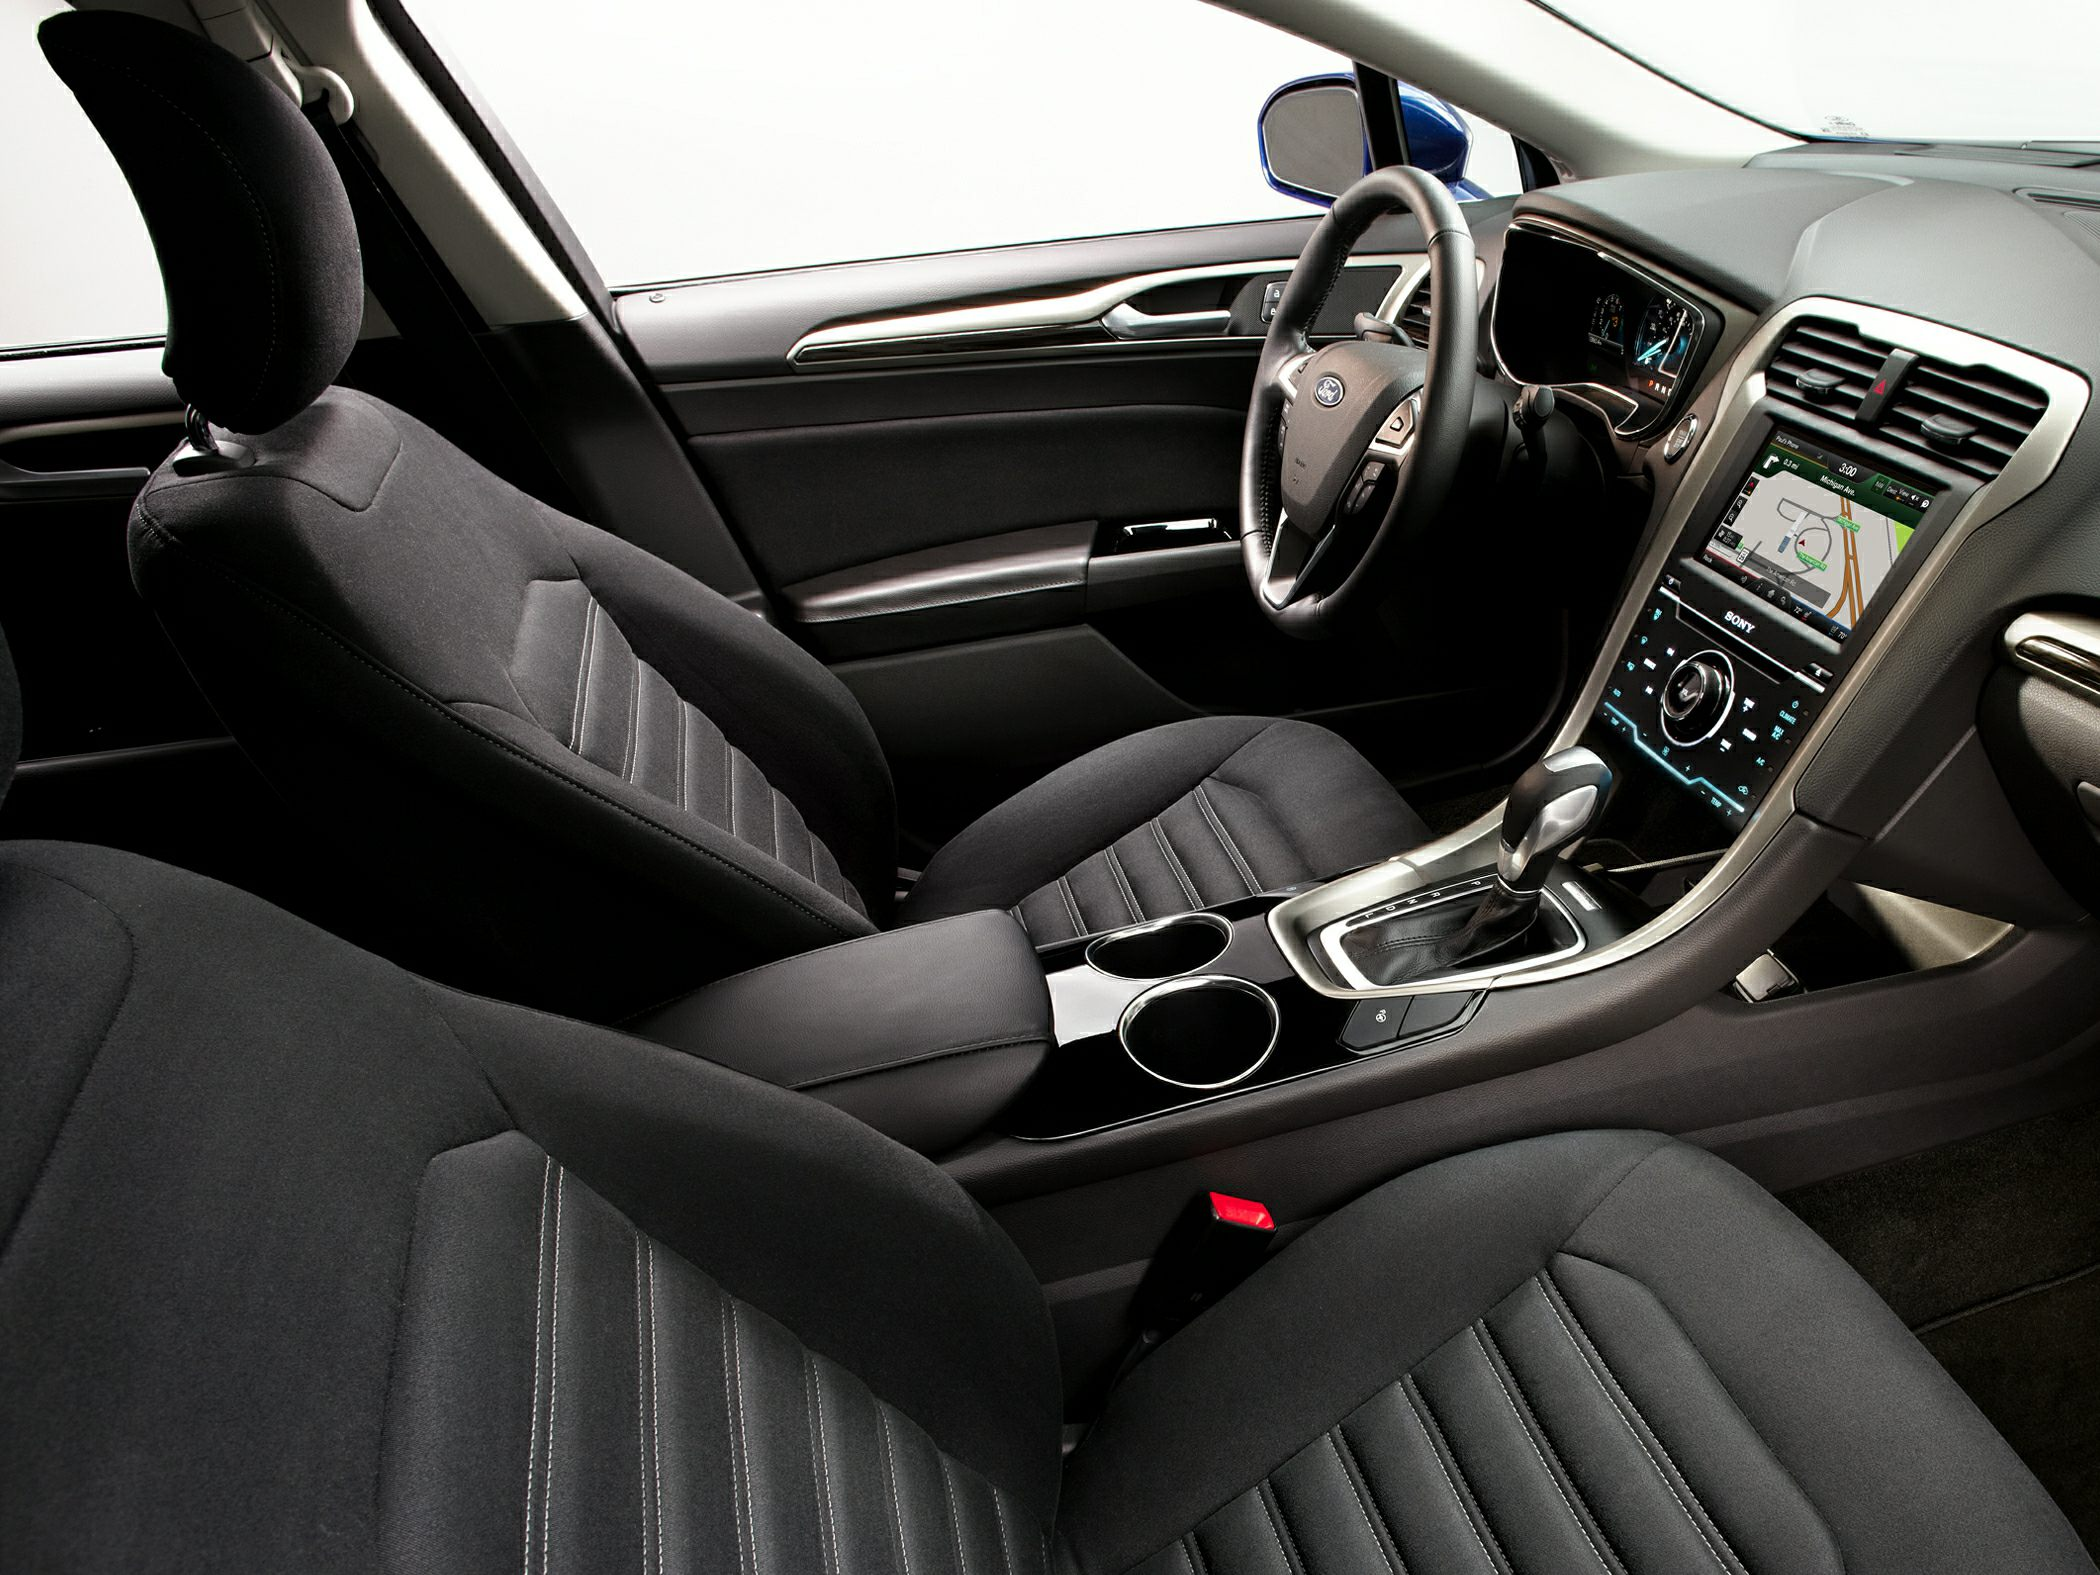 2014 Ford Fusion interiors.jpg